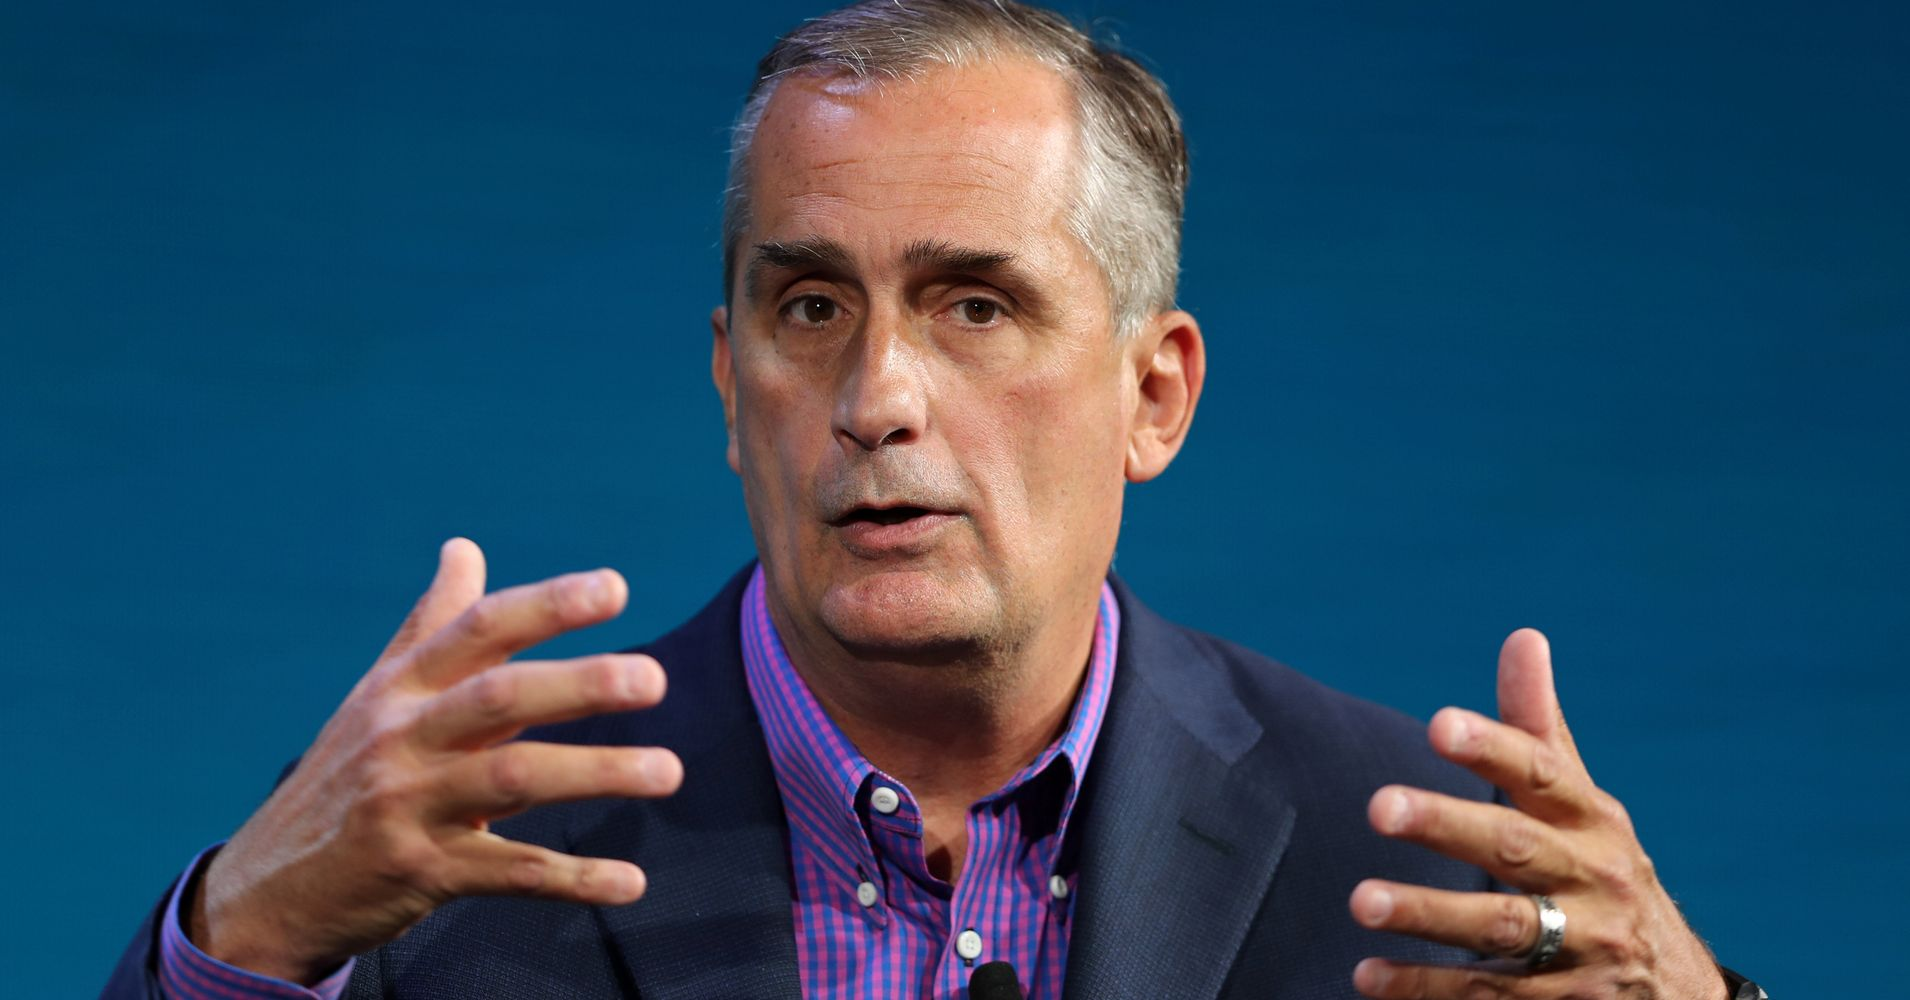 Intel CEO Resigns After Investigation Into Consensual Relationship With Employee